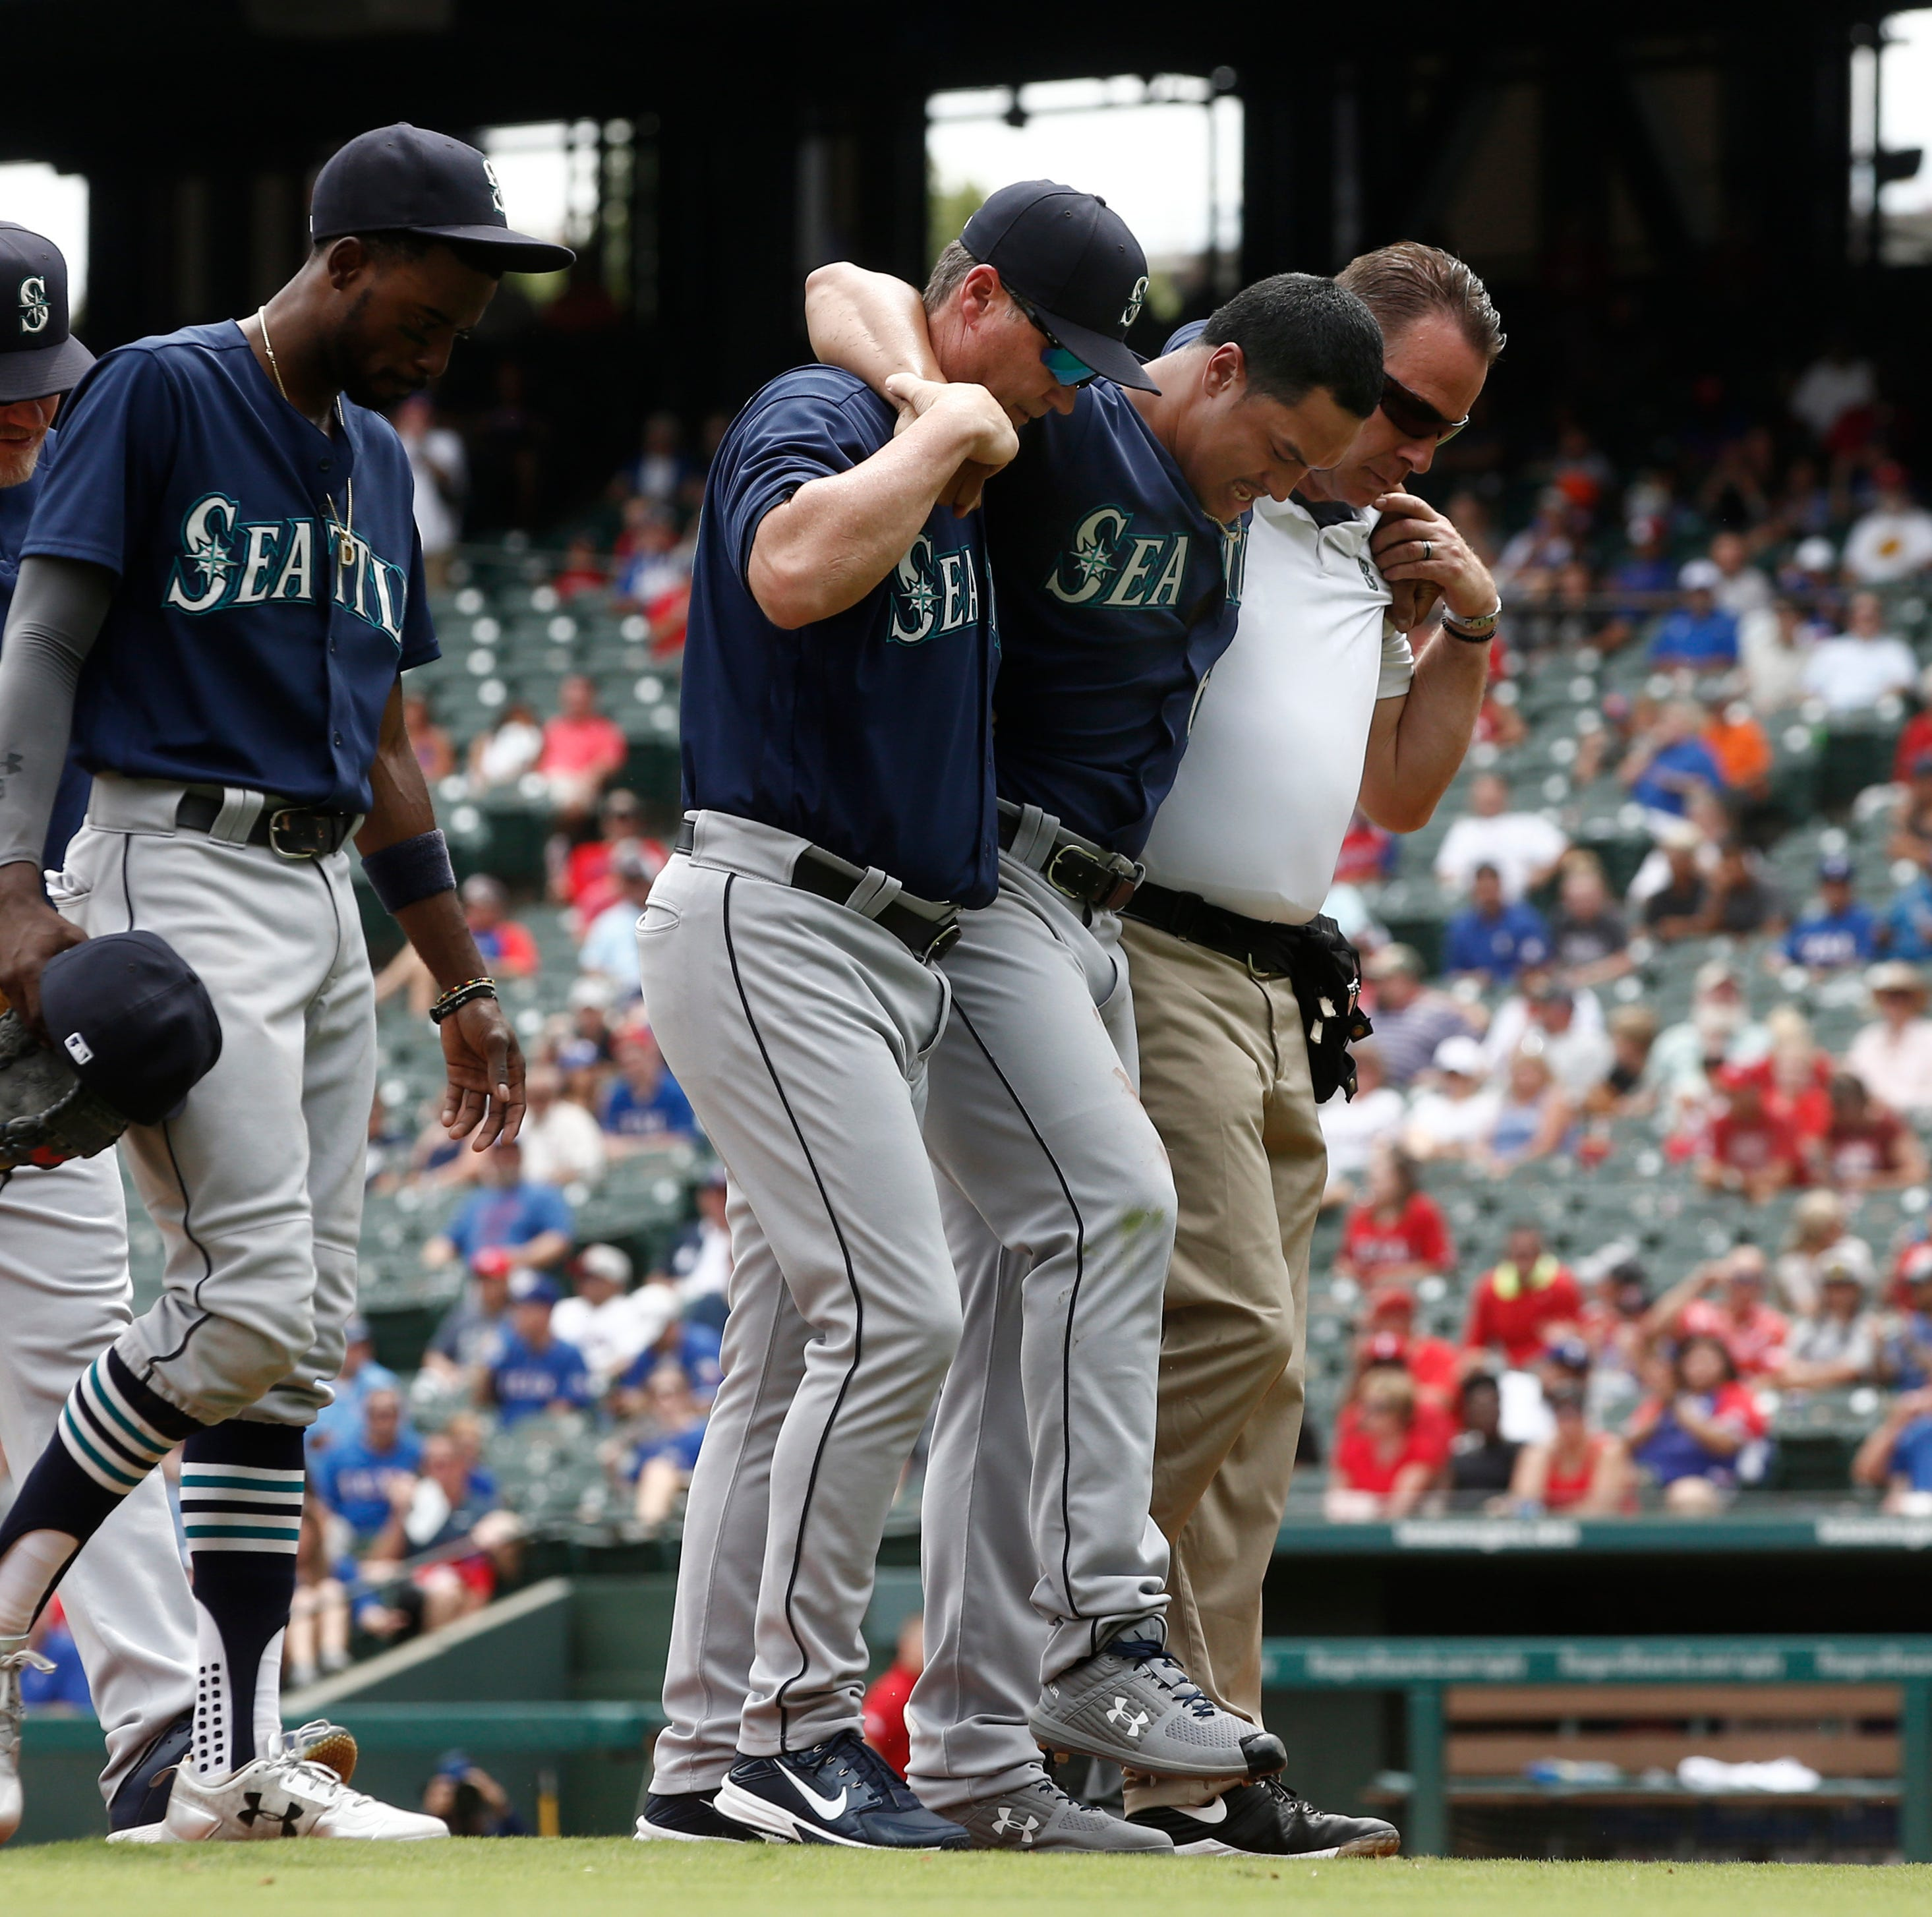 Mariners' slide continues with embarrassing loss to Rangers